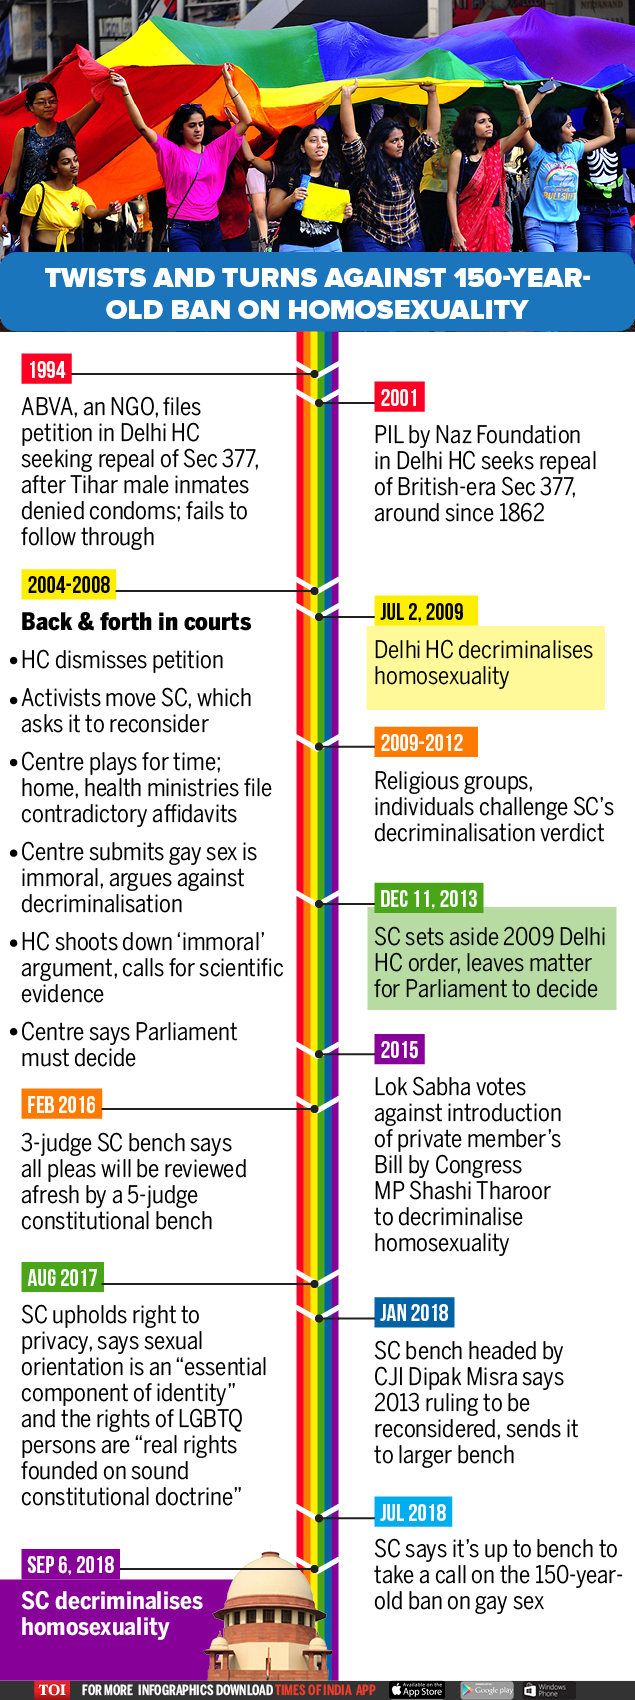 Twists and turns against 150-year-old ban on homosexuality